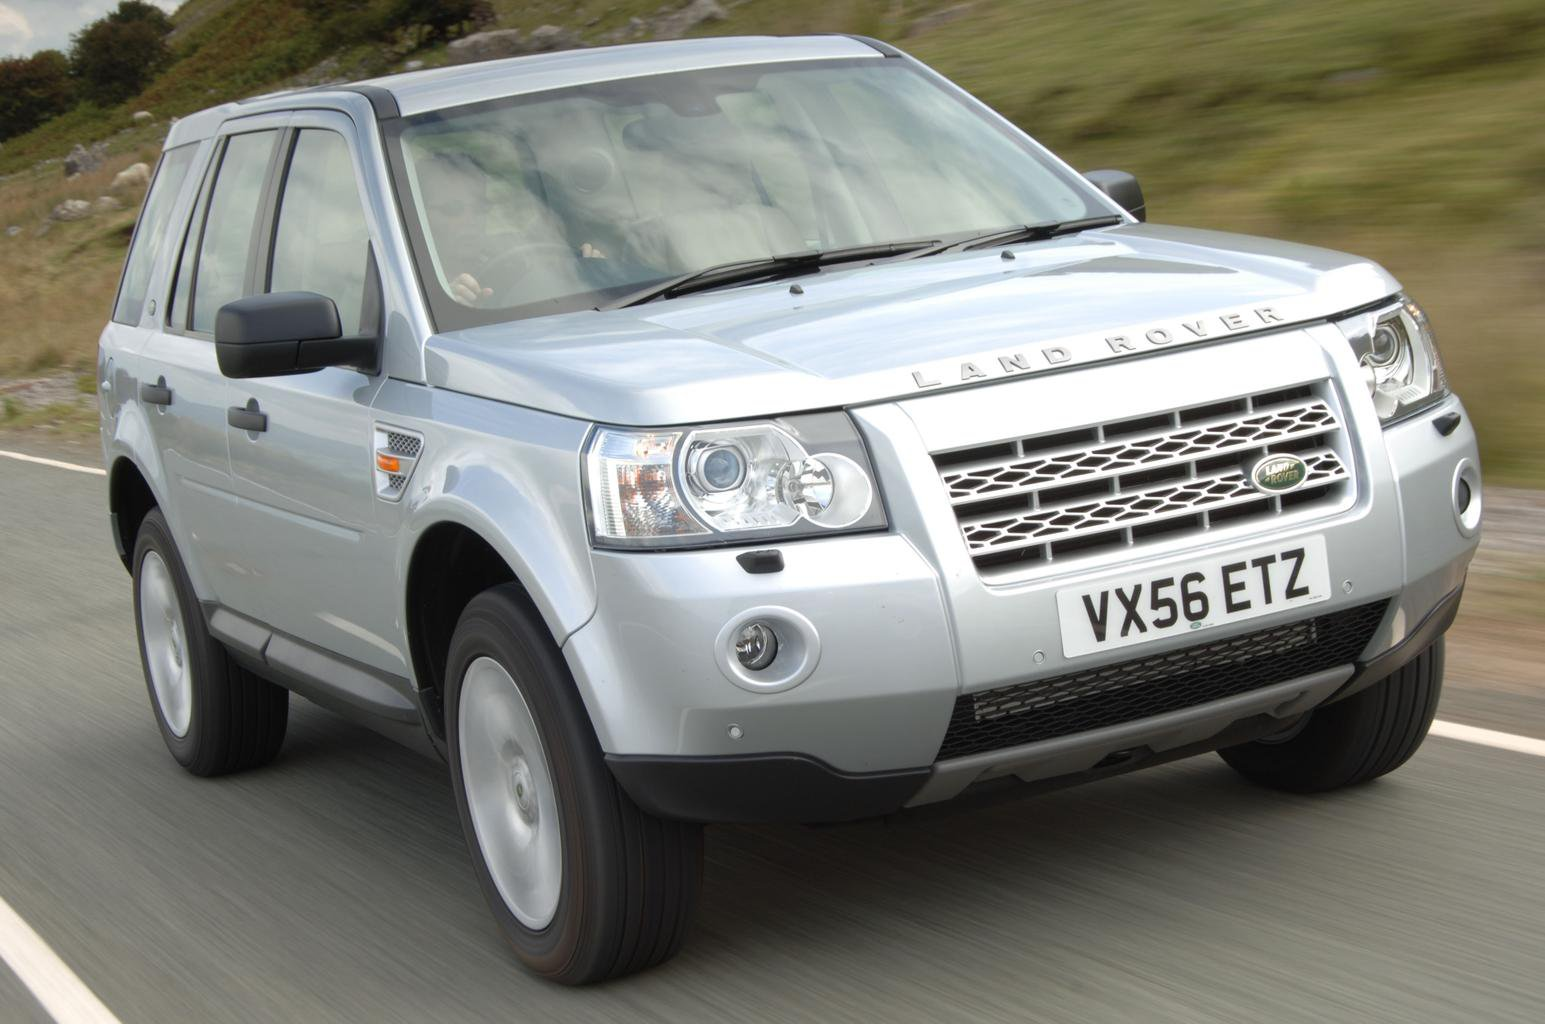 Used test – affordable SUVs: Hyundai Santa Fe vs Land Rover Freelander and rivals